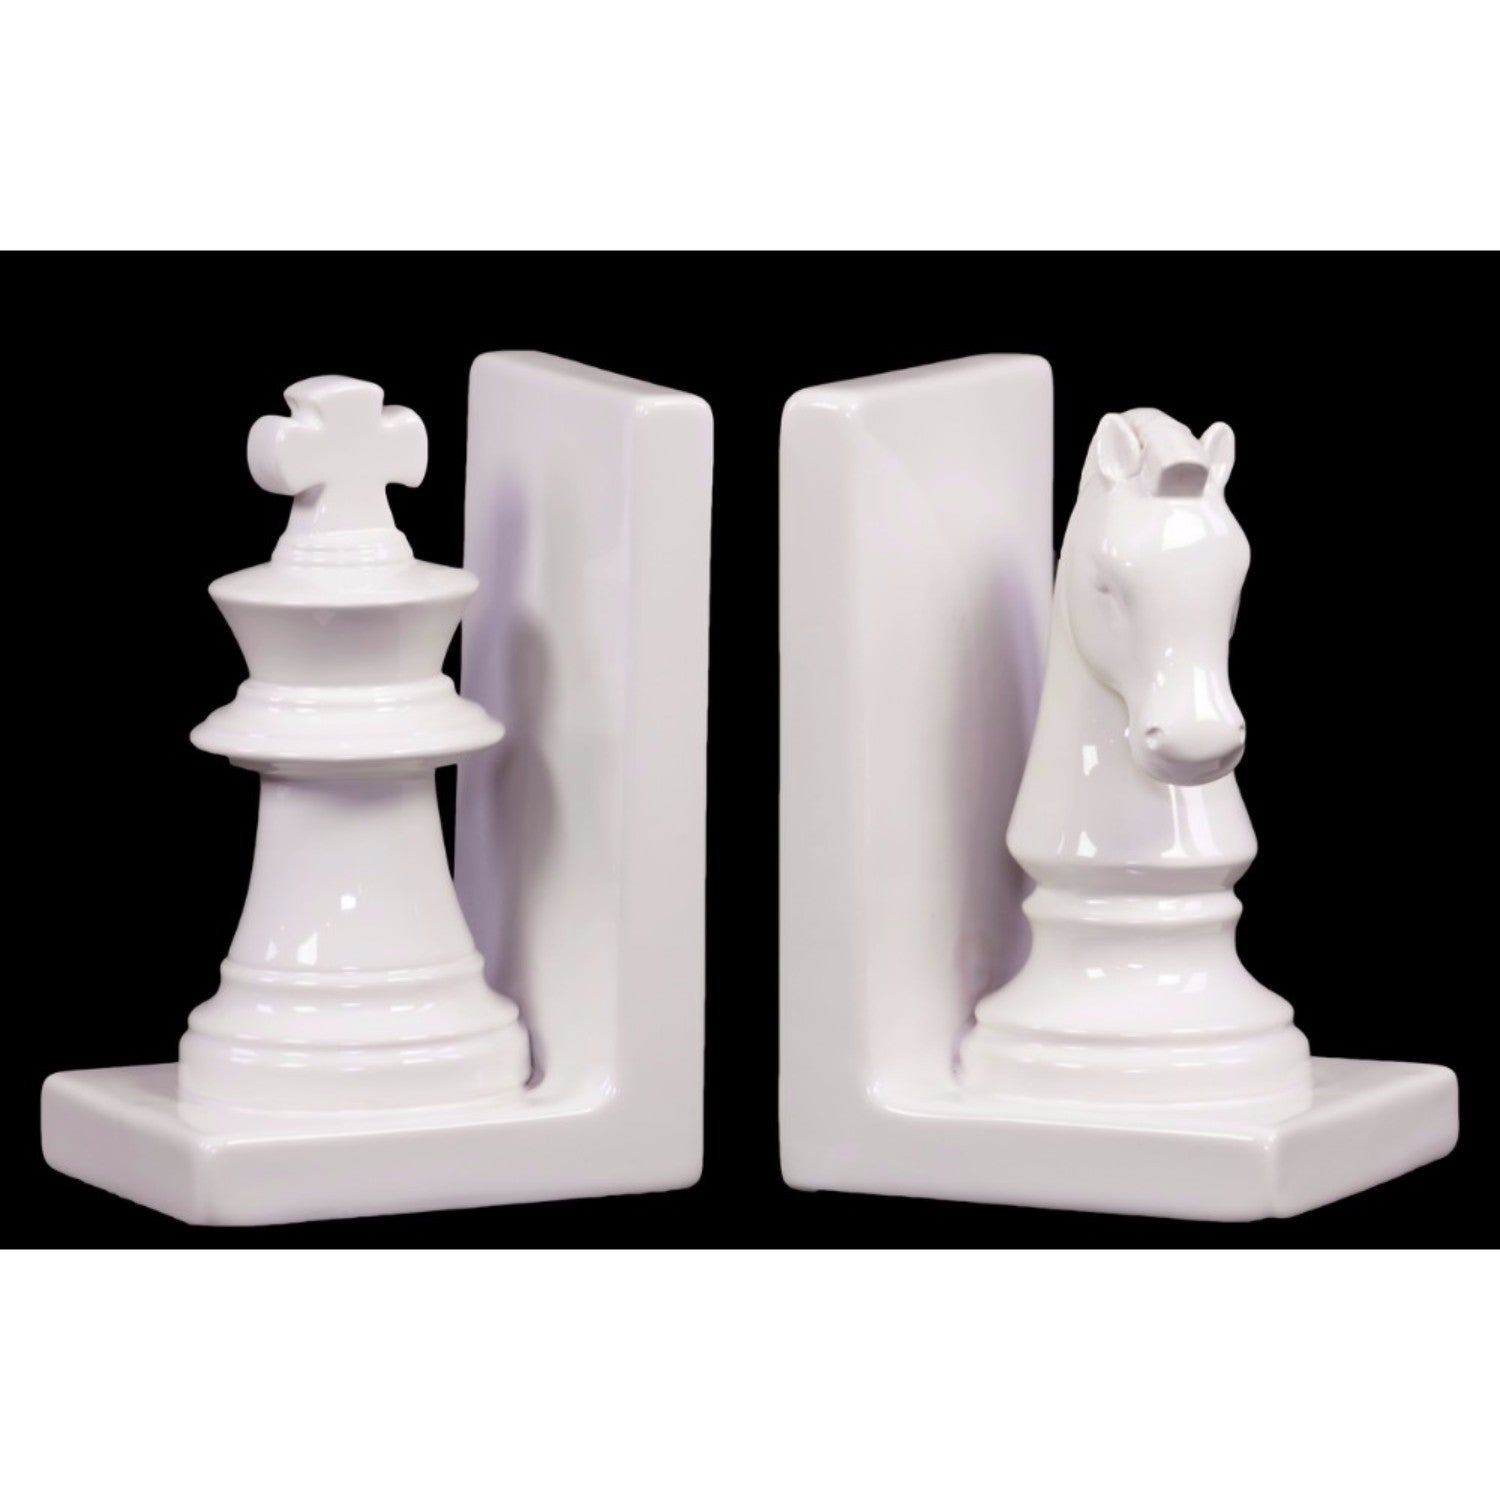 Benzara Chess Piece with Knight and Rook Bookend Assortme...